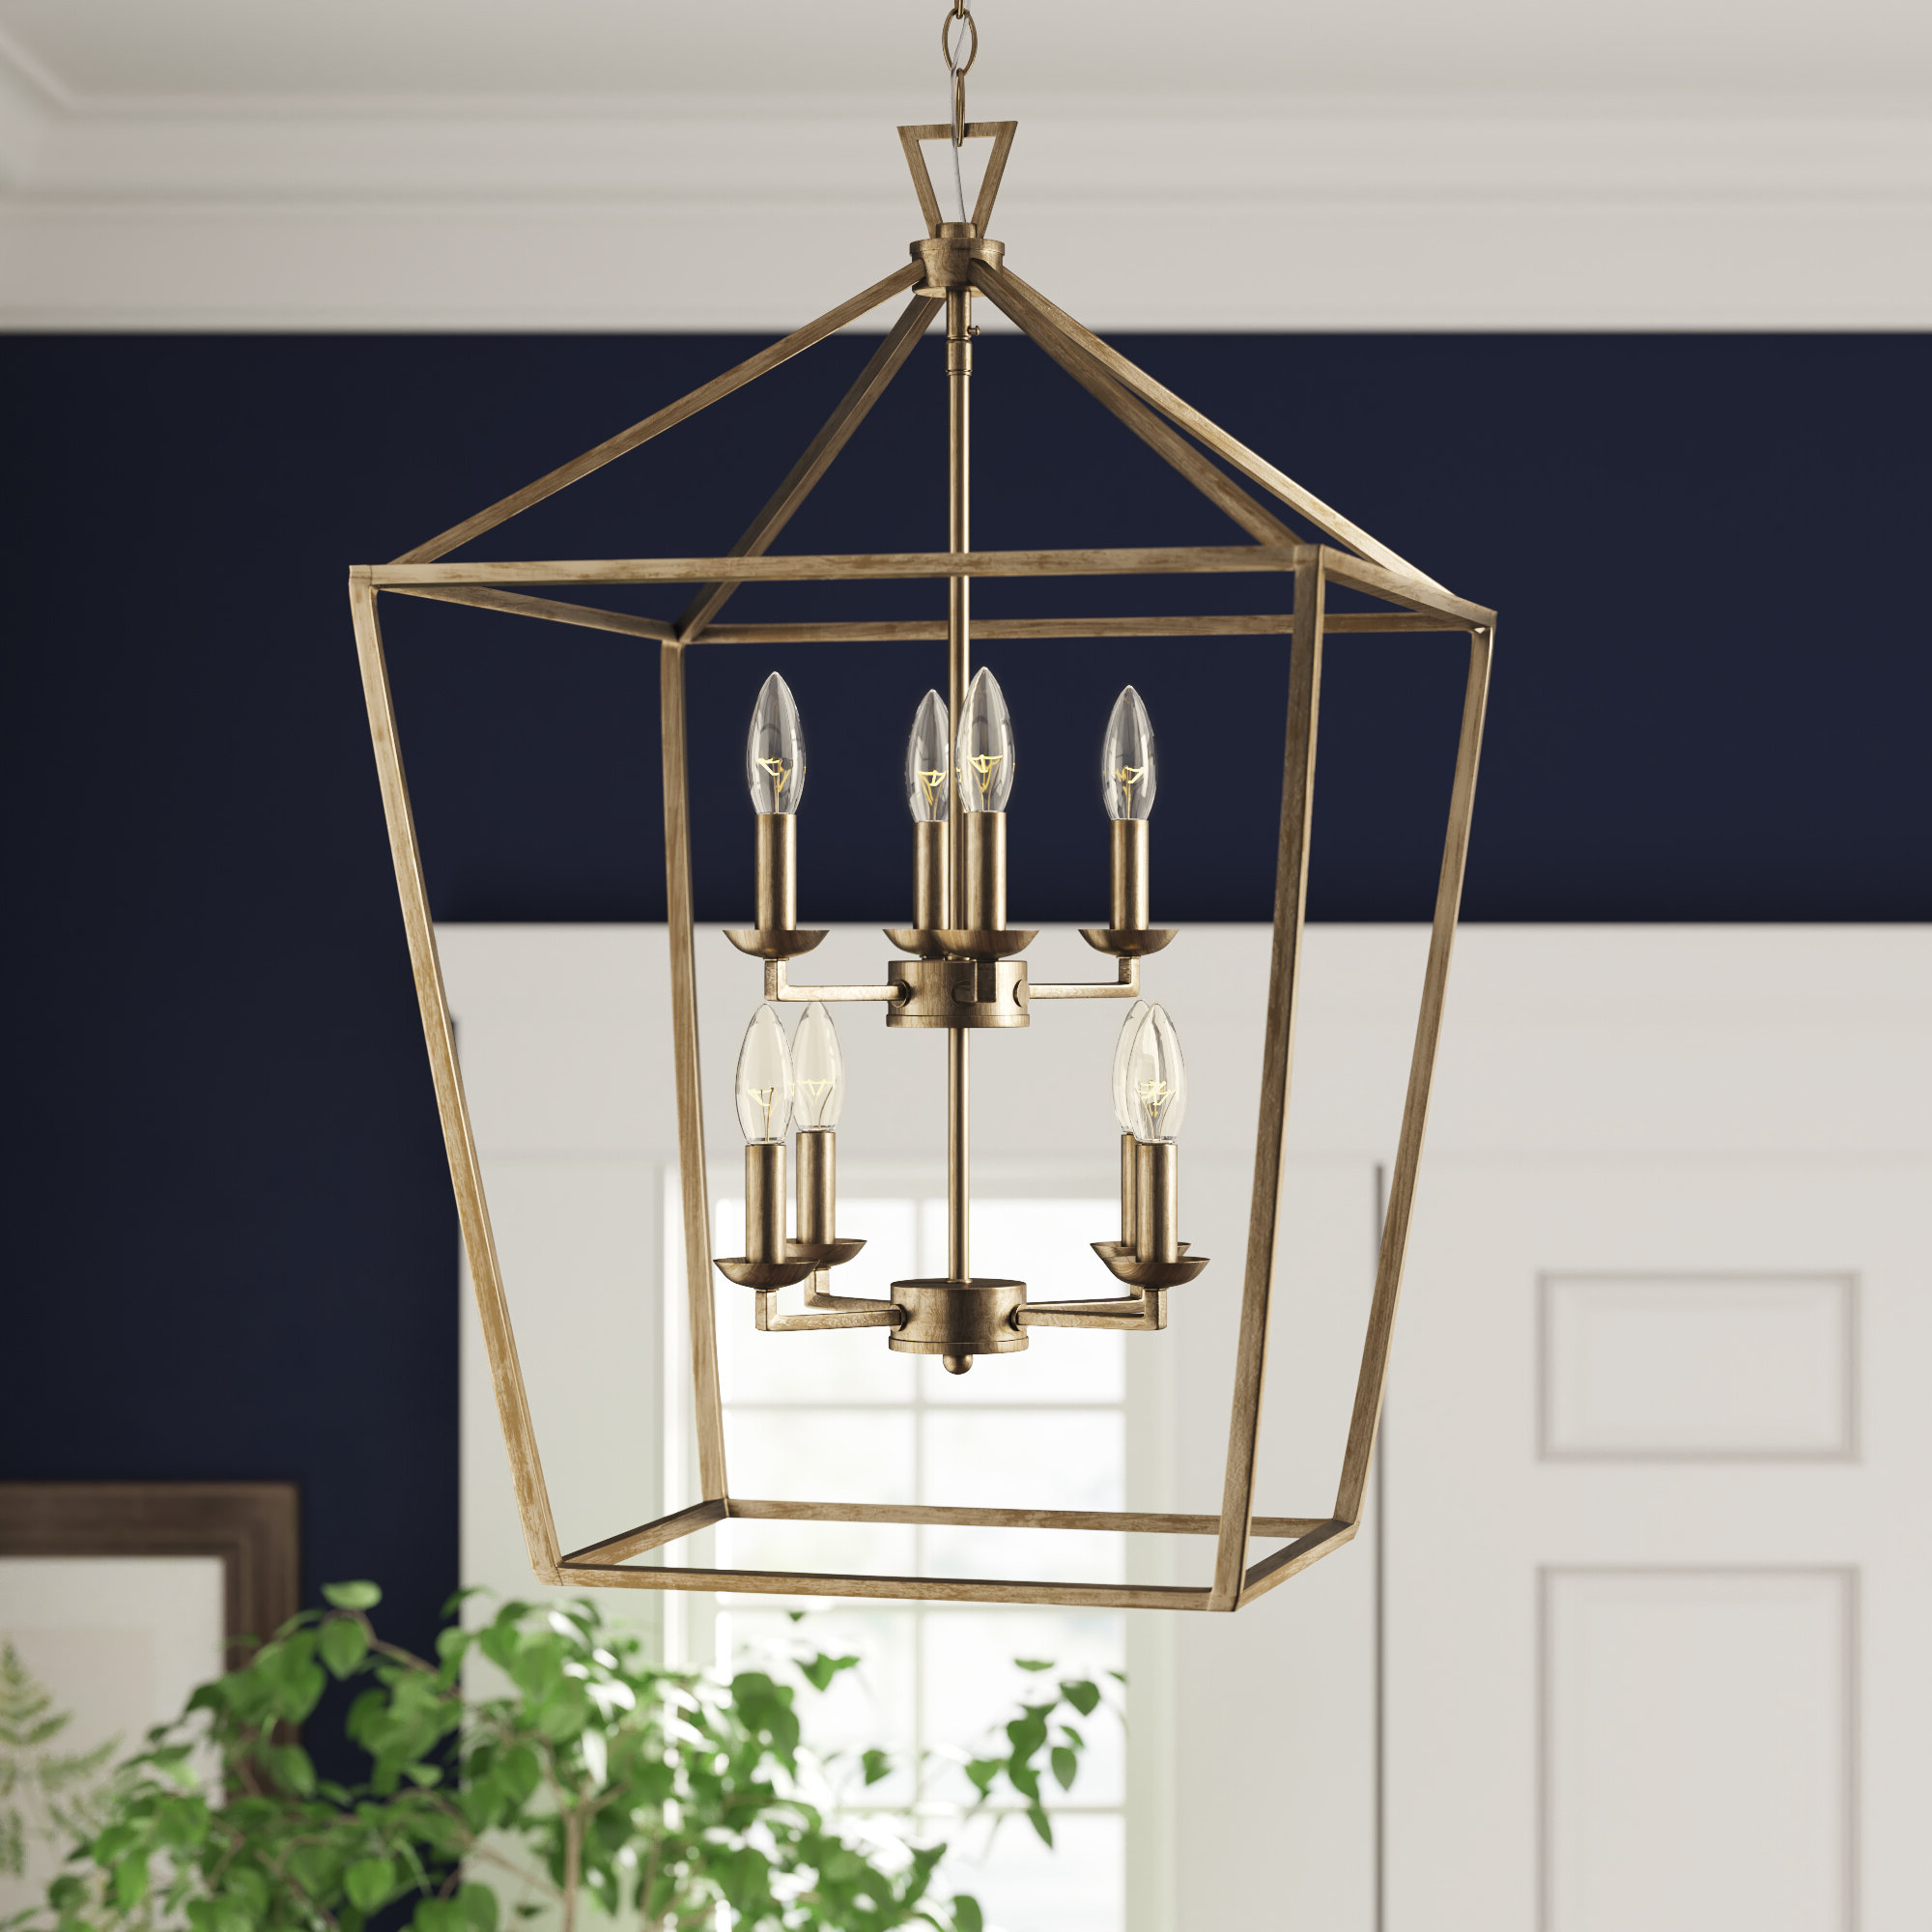 Most Recently Released Laurel Foundry Modern Farmhouse Carmen 8 Light Lantern Geometric Pendant Pertaining To Carmen 8 Light Lantern Geometric Pendants (Gallery 6 of 20)